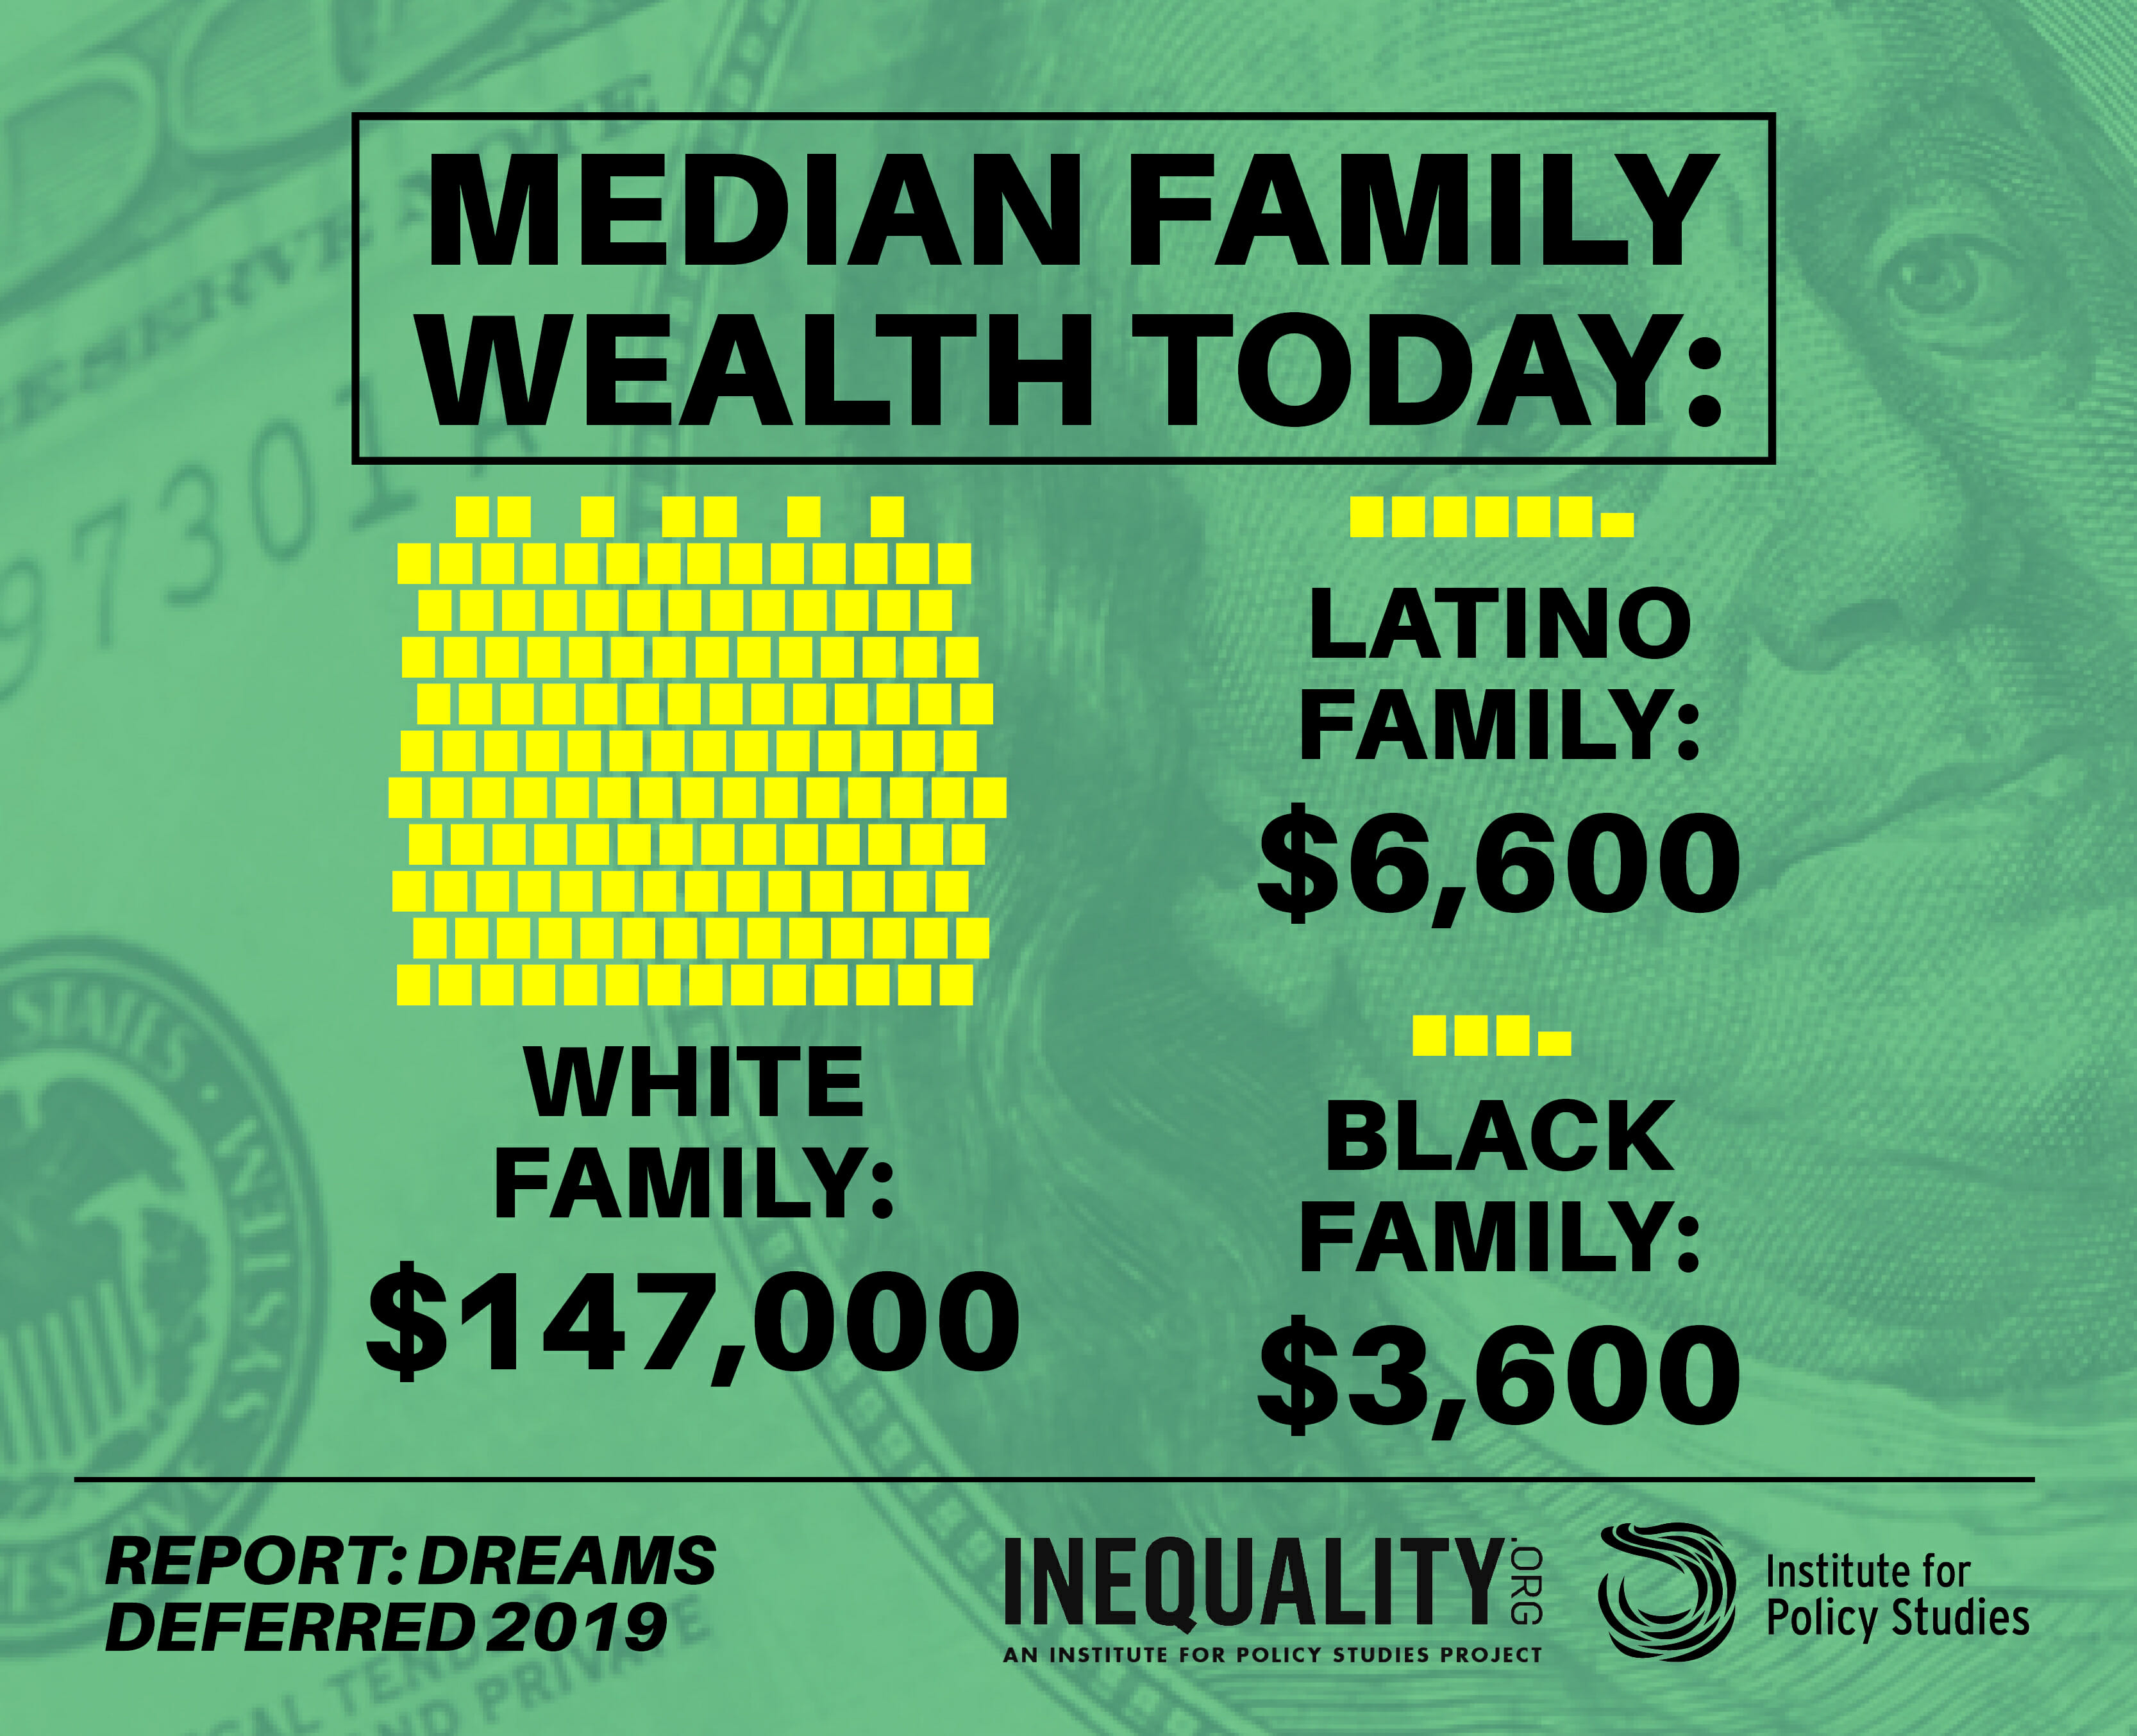 Dreams Deferred: How Enriching the 1% Widens the Racial Wealth Divide